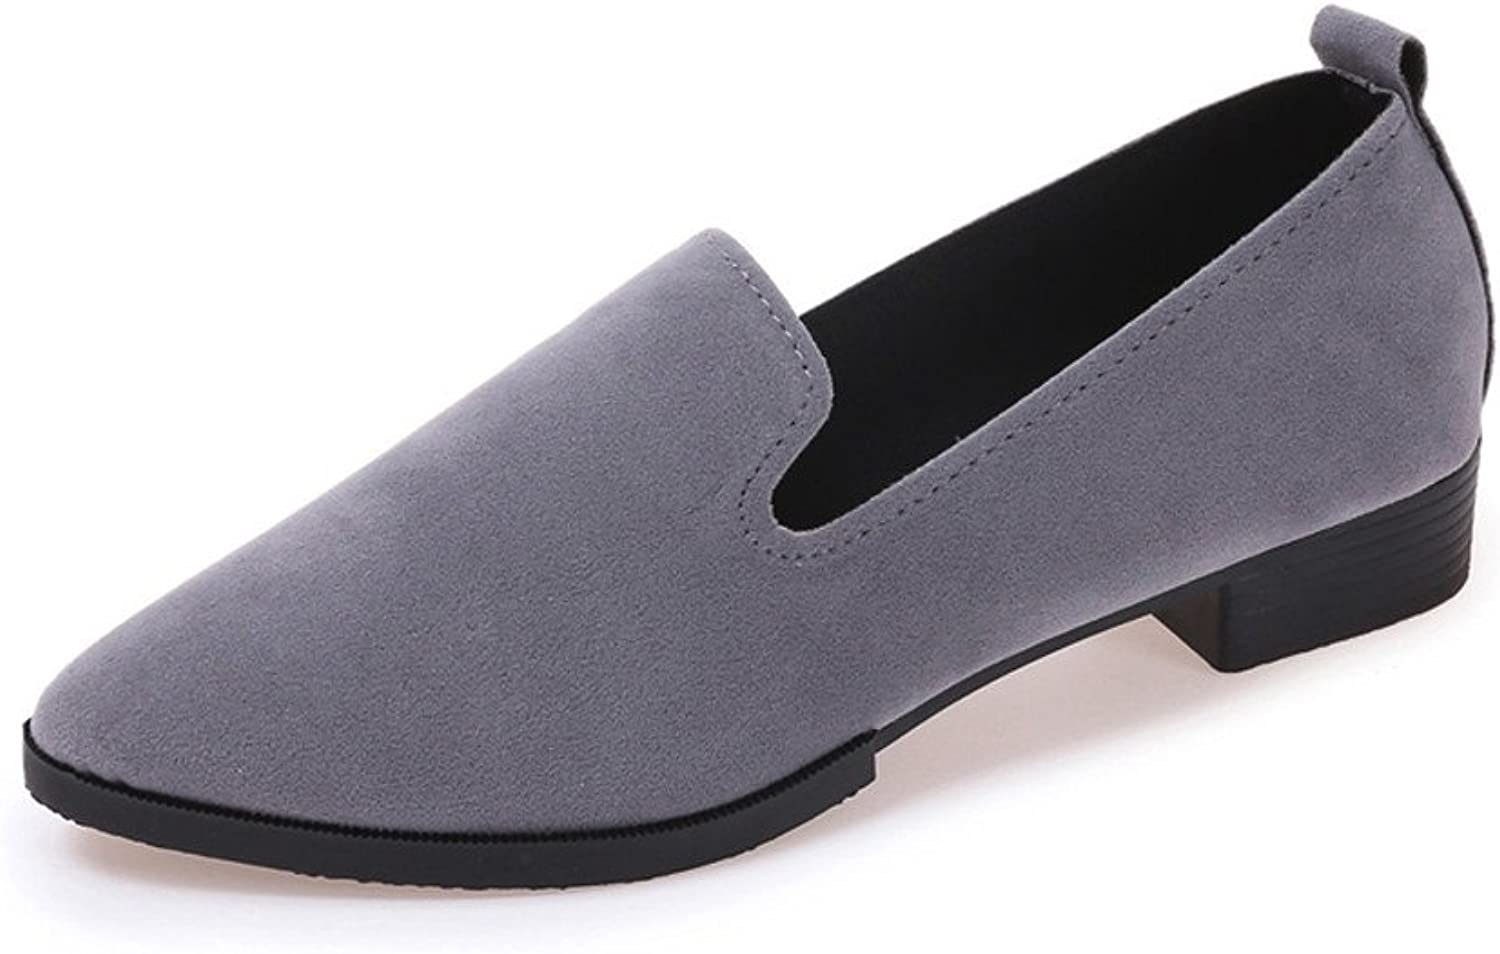 Xinantime Solid color Loafer shoes Ladies Casual Single shoes Slip On Flat Sandals Shallow Mouth Small shoes